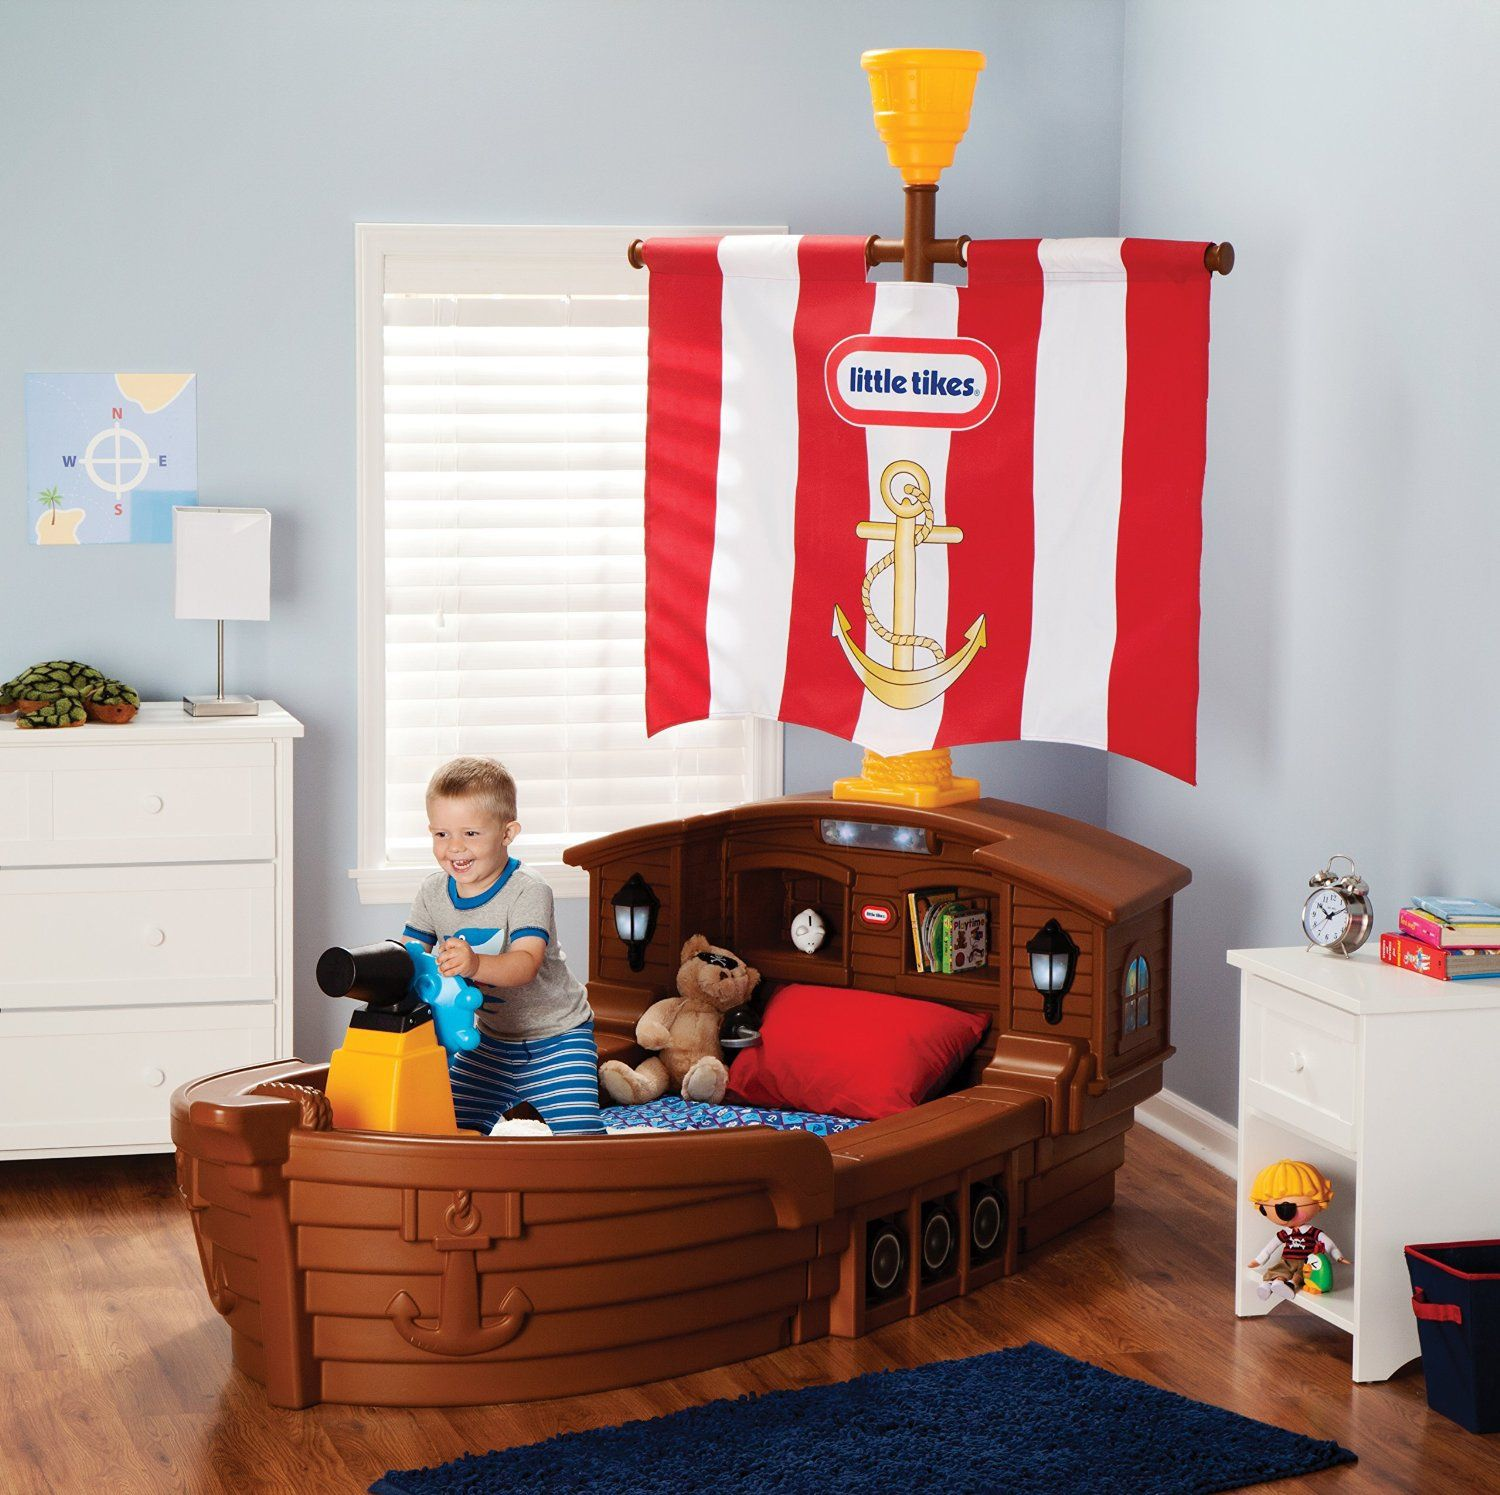 Super Cool Beds super cool pirate ship bed for the kids room. #kidsroom #kidsbed